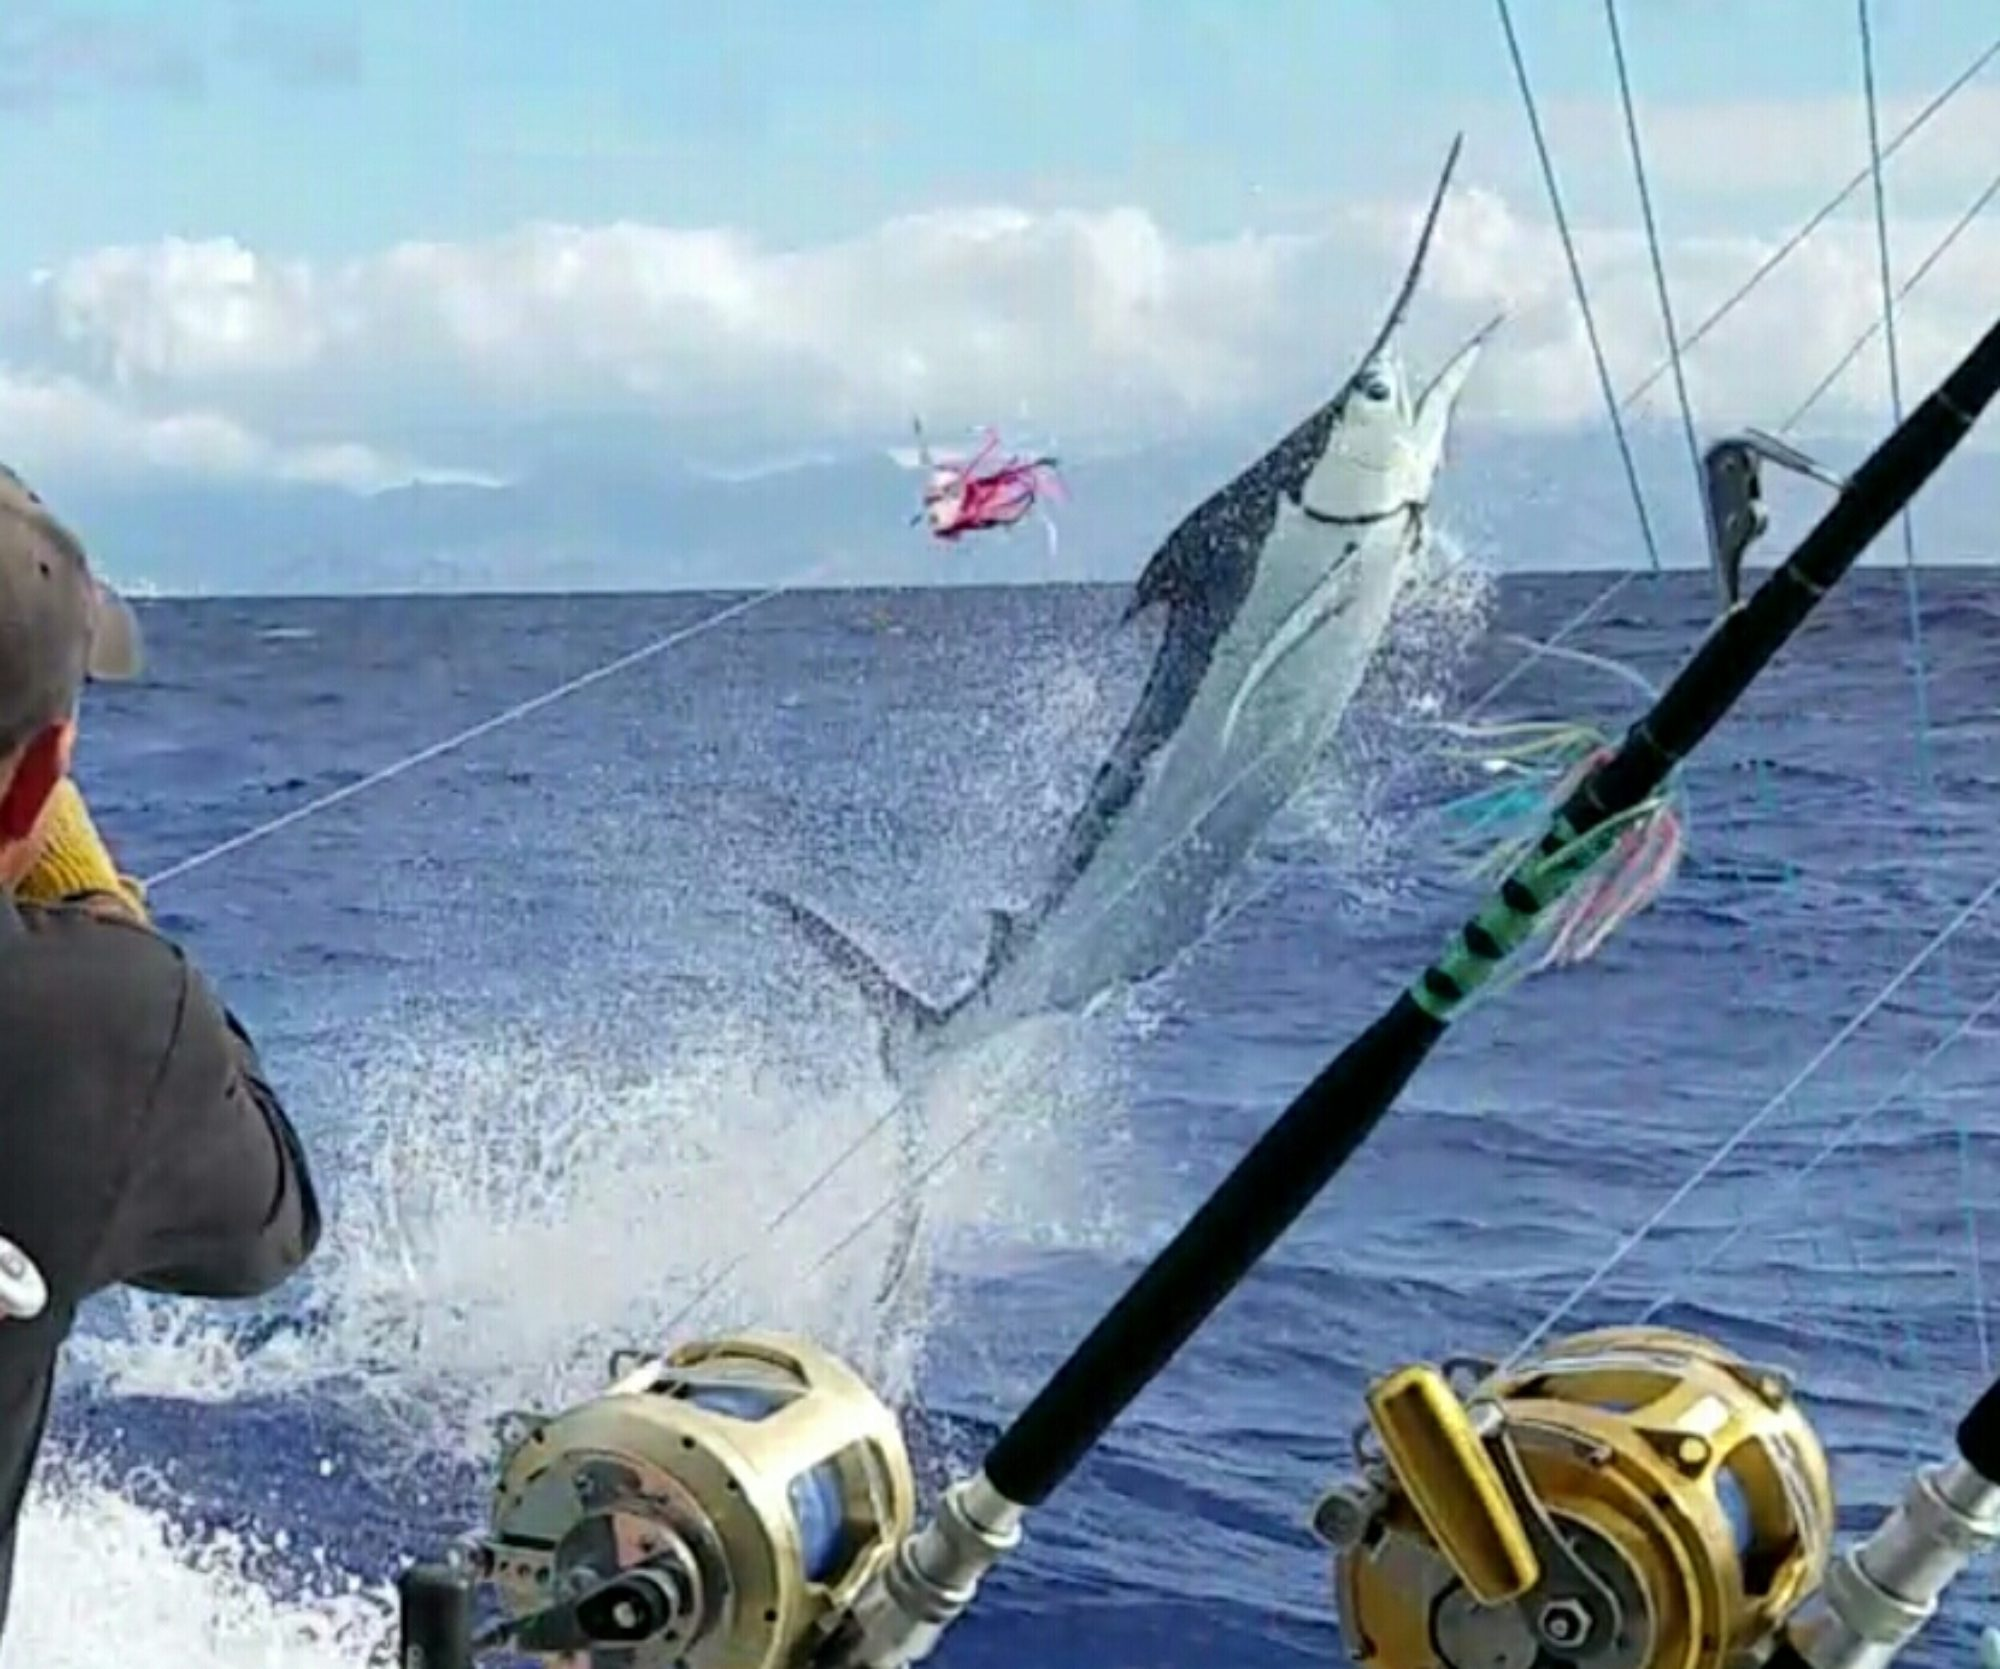 oahu deepsea fishing call us today 808 938 1111